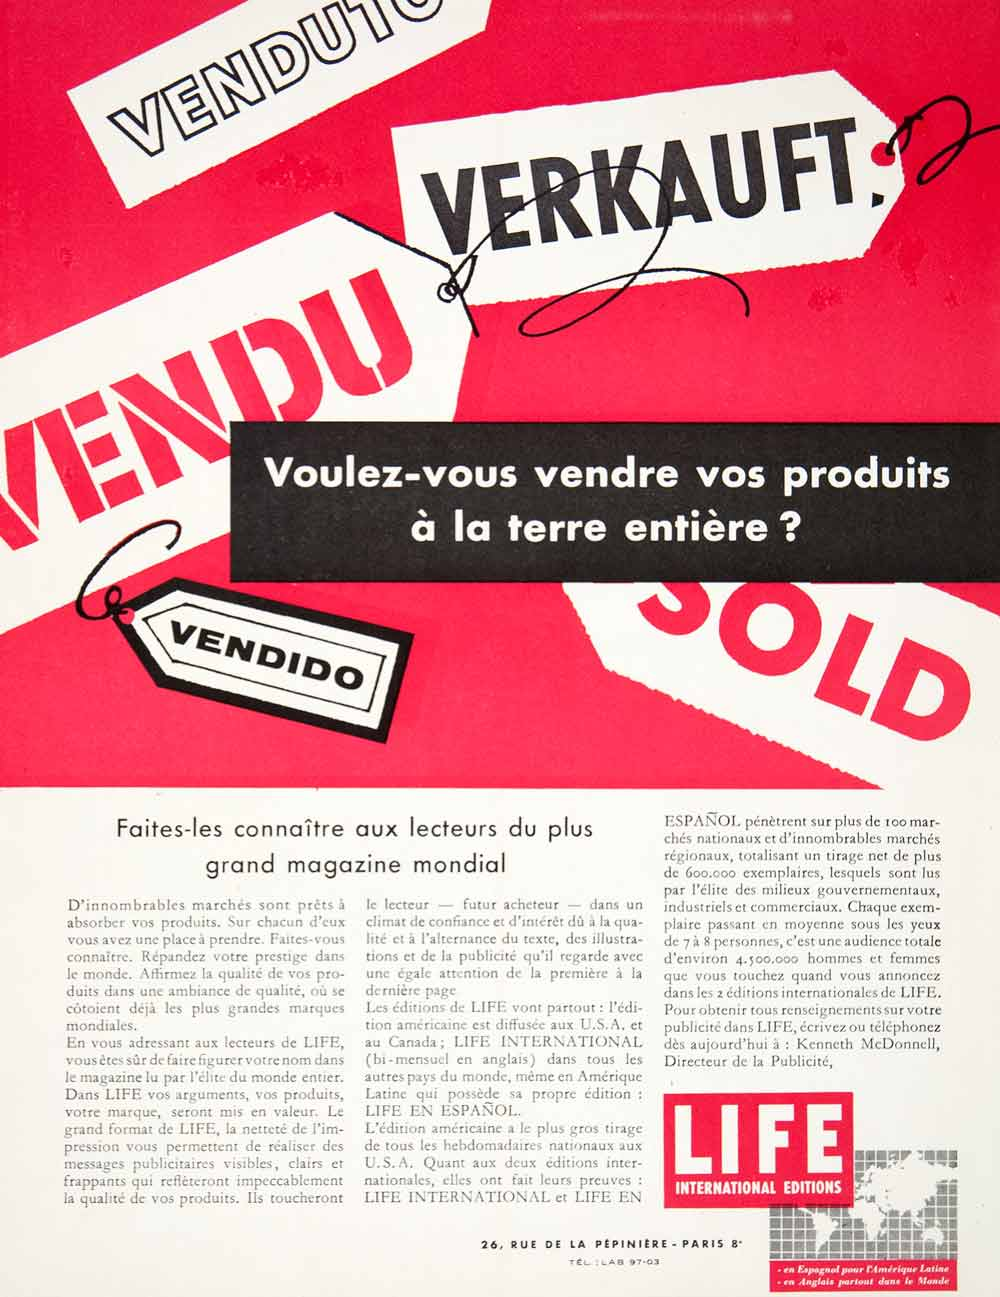 1957 Ad LIFE 26 Rue Pepiniere Paris Advertising International Publication VEN7